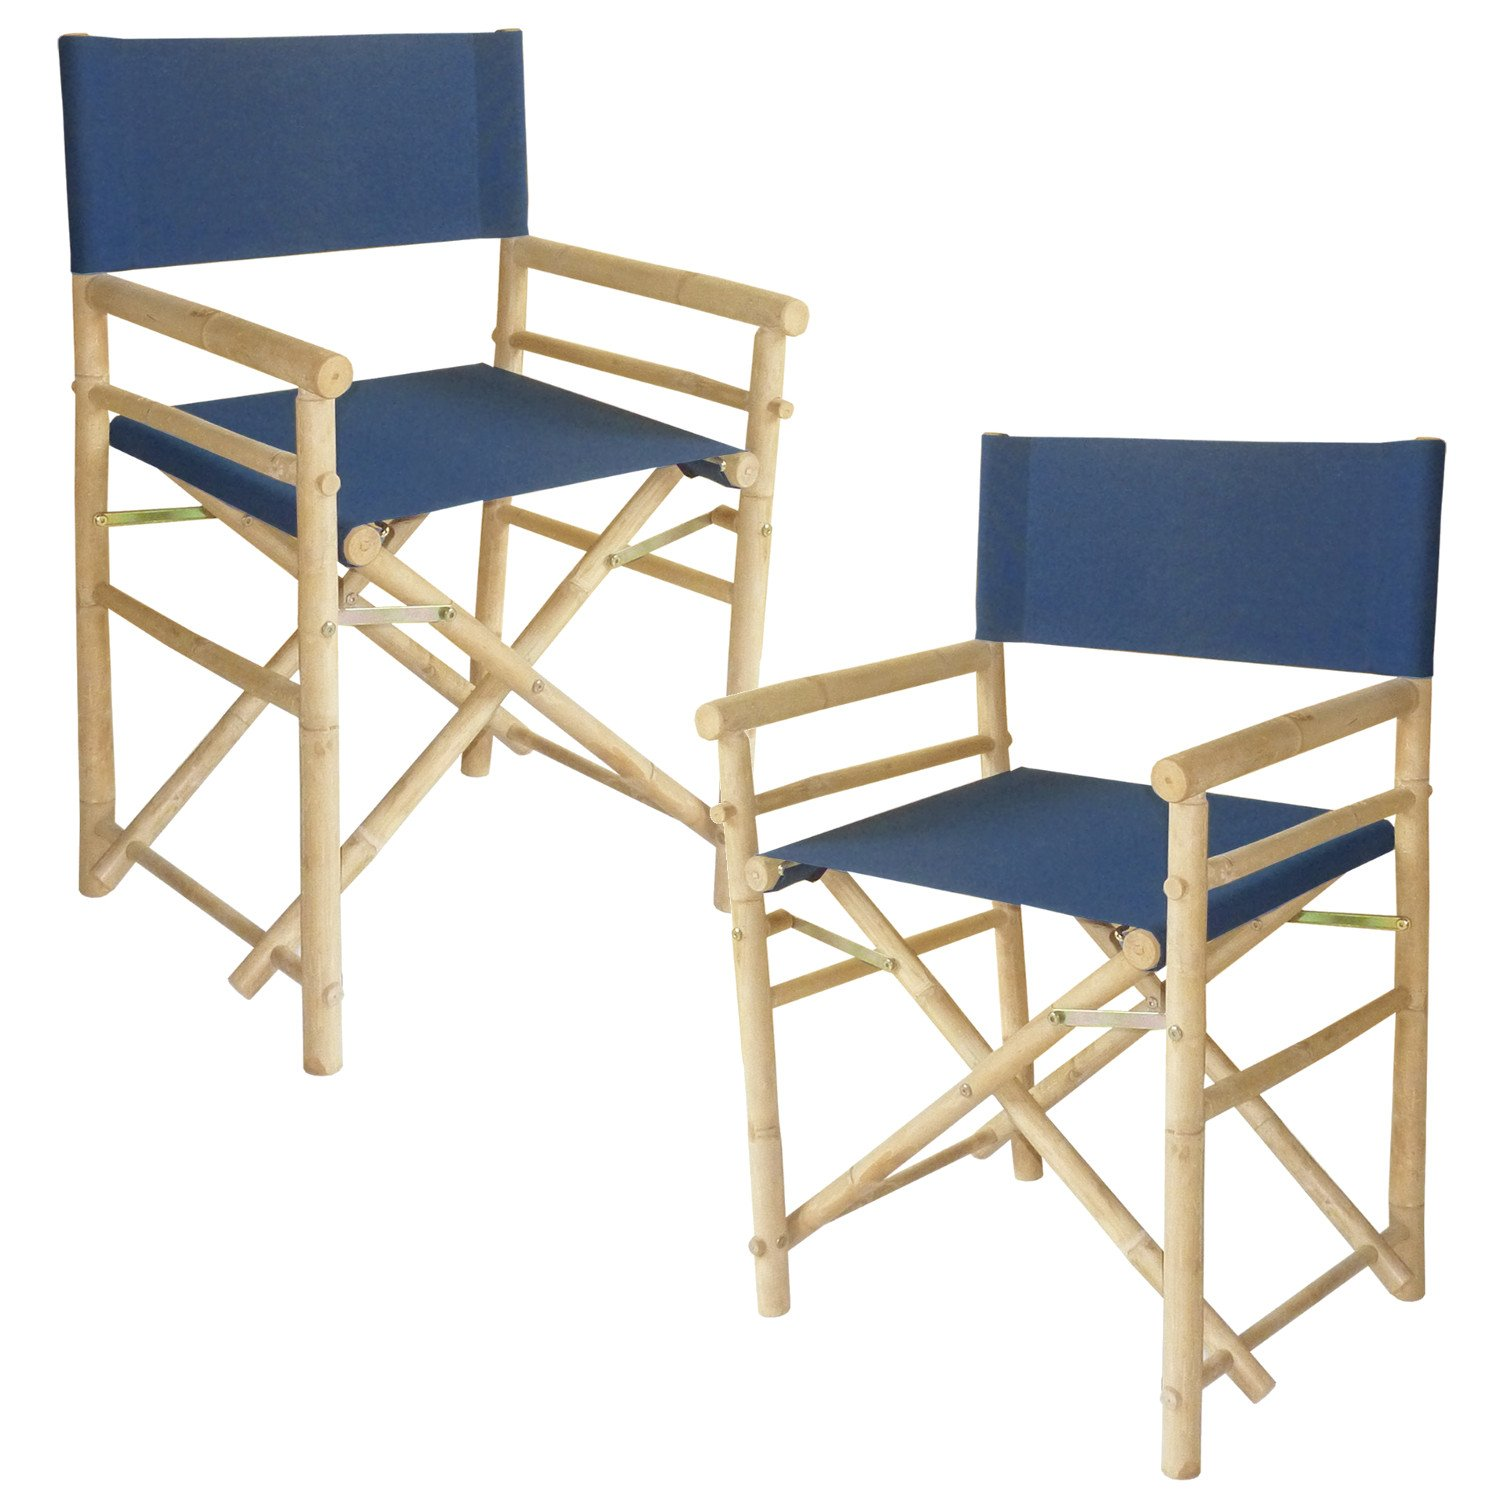 Zew Bamboo Indoor Outdoor Director Navy Blue Canvas-Set Of 2 Chairs, 35'' H x 18'' W x 23'' D by Zew